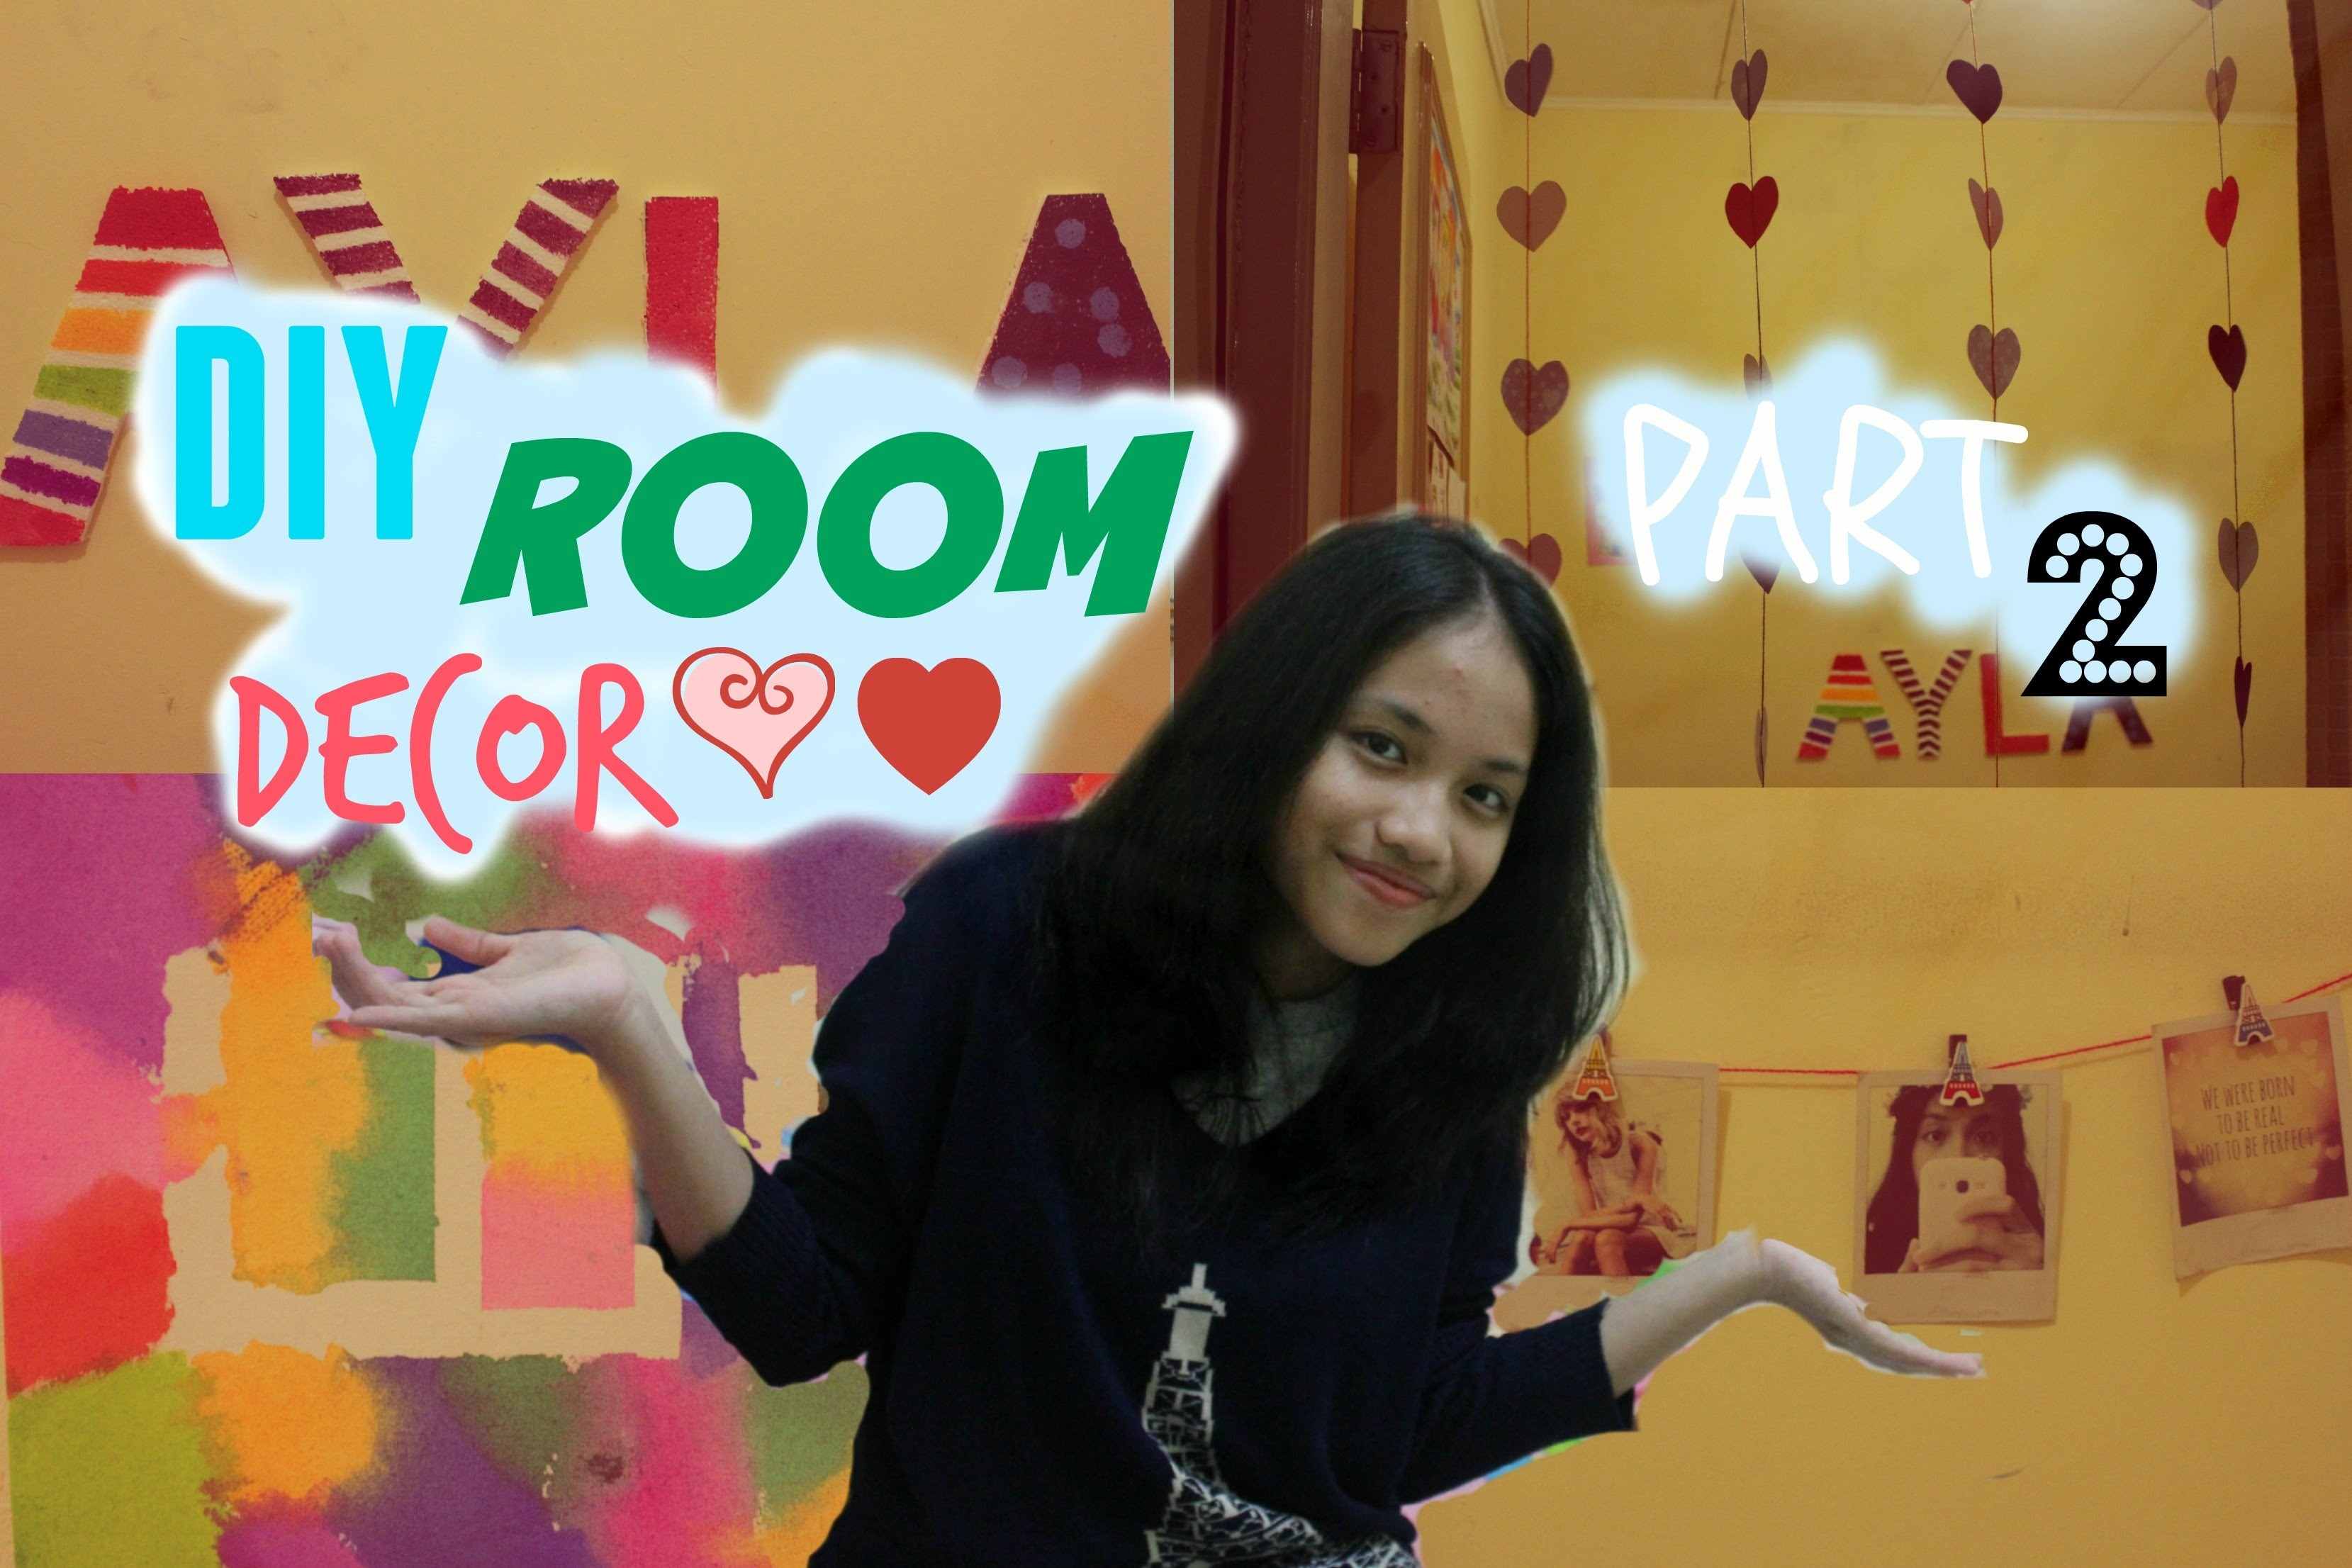 DIY Room Decor 2015 Part 2 - Wall Decorations|Just Ayla